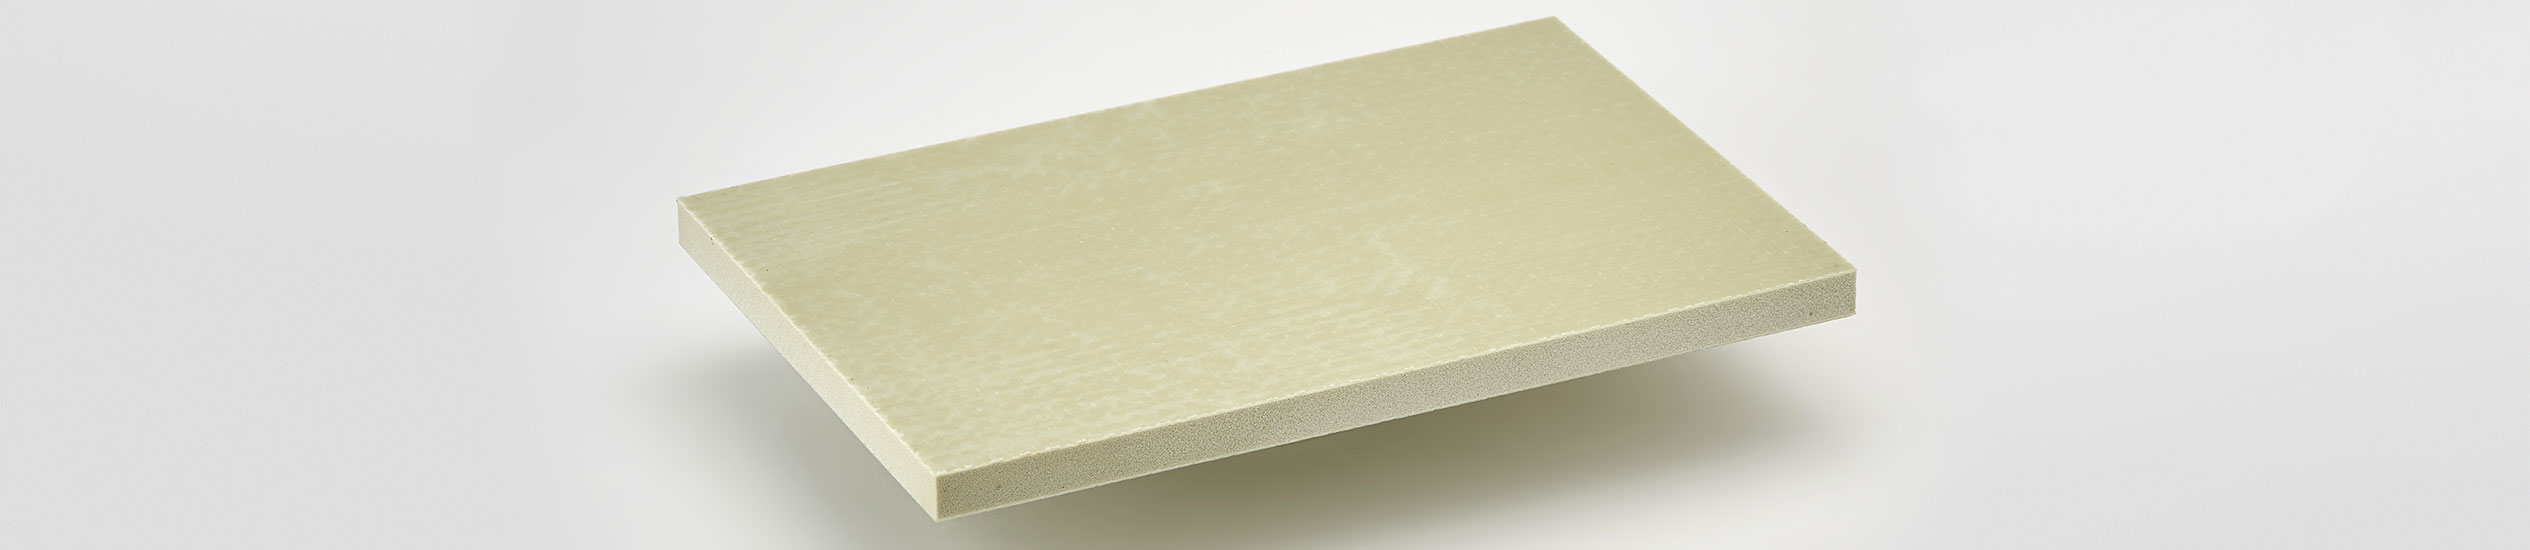 PVC-STEP is a lightweight sandwich panel with a core in polypropylene with glass fiber reinforced with epoxy resin.